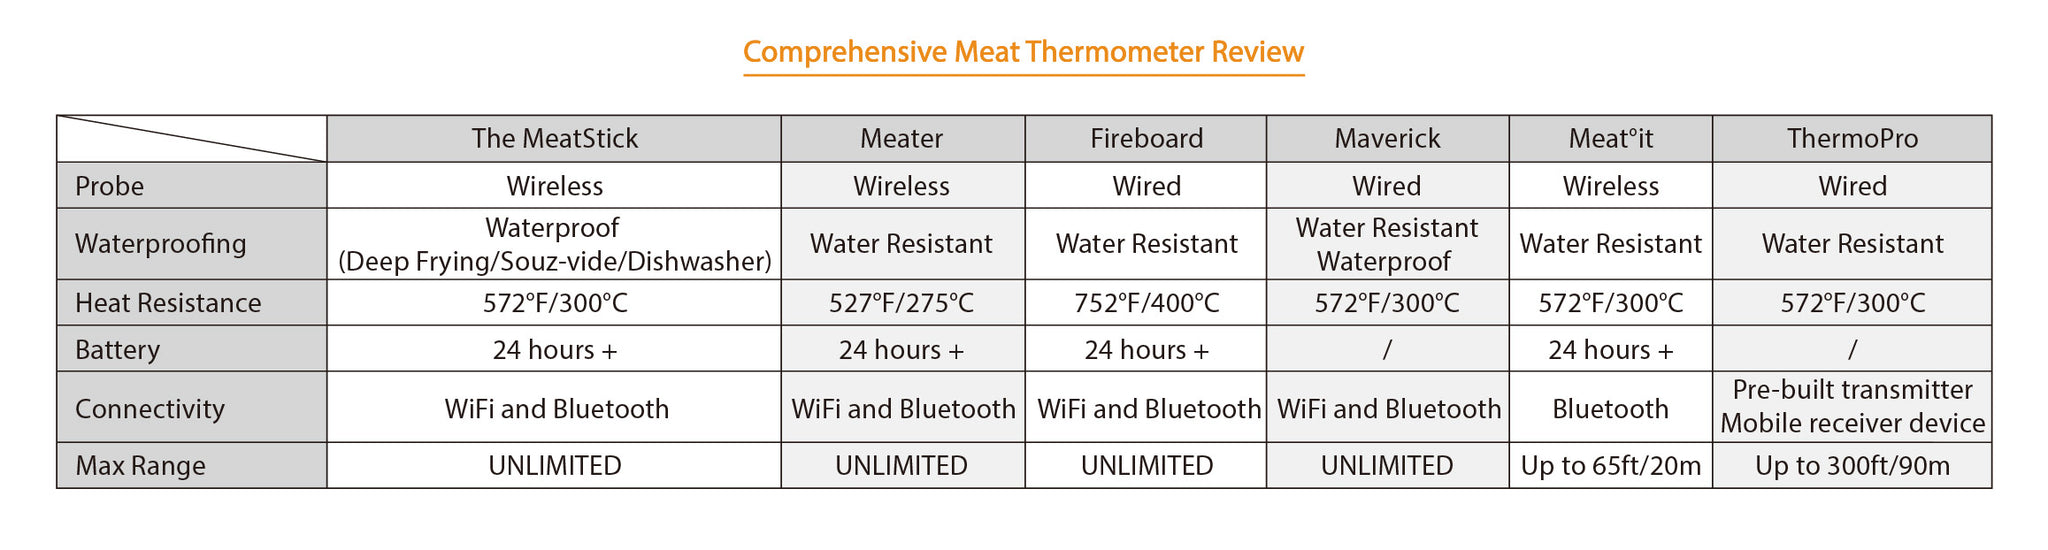 Meat Thermometer Review